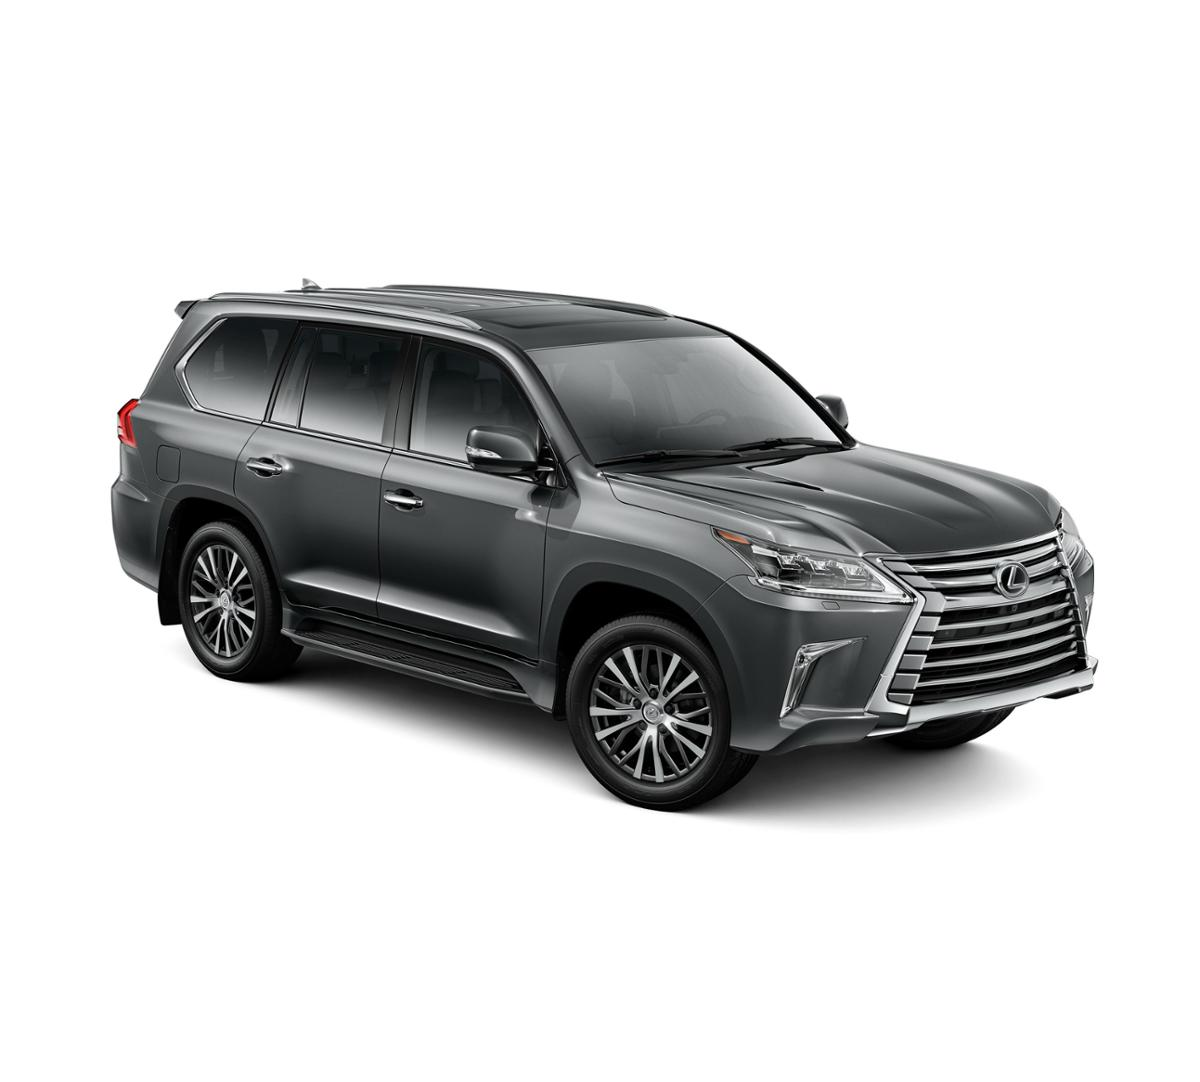 2018 Lexus LX 570 Vehicle Photo in Houston, TX 77074